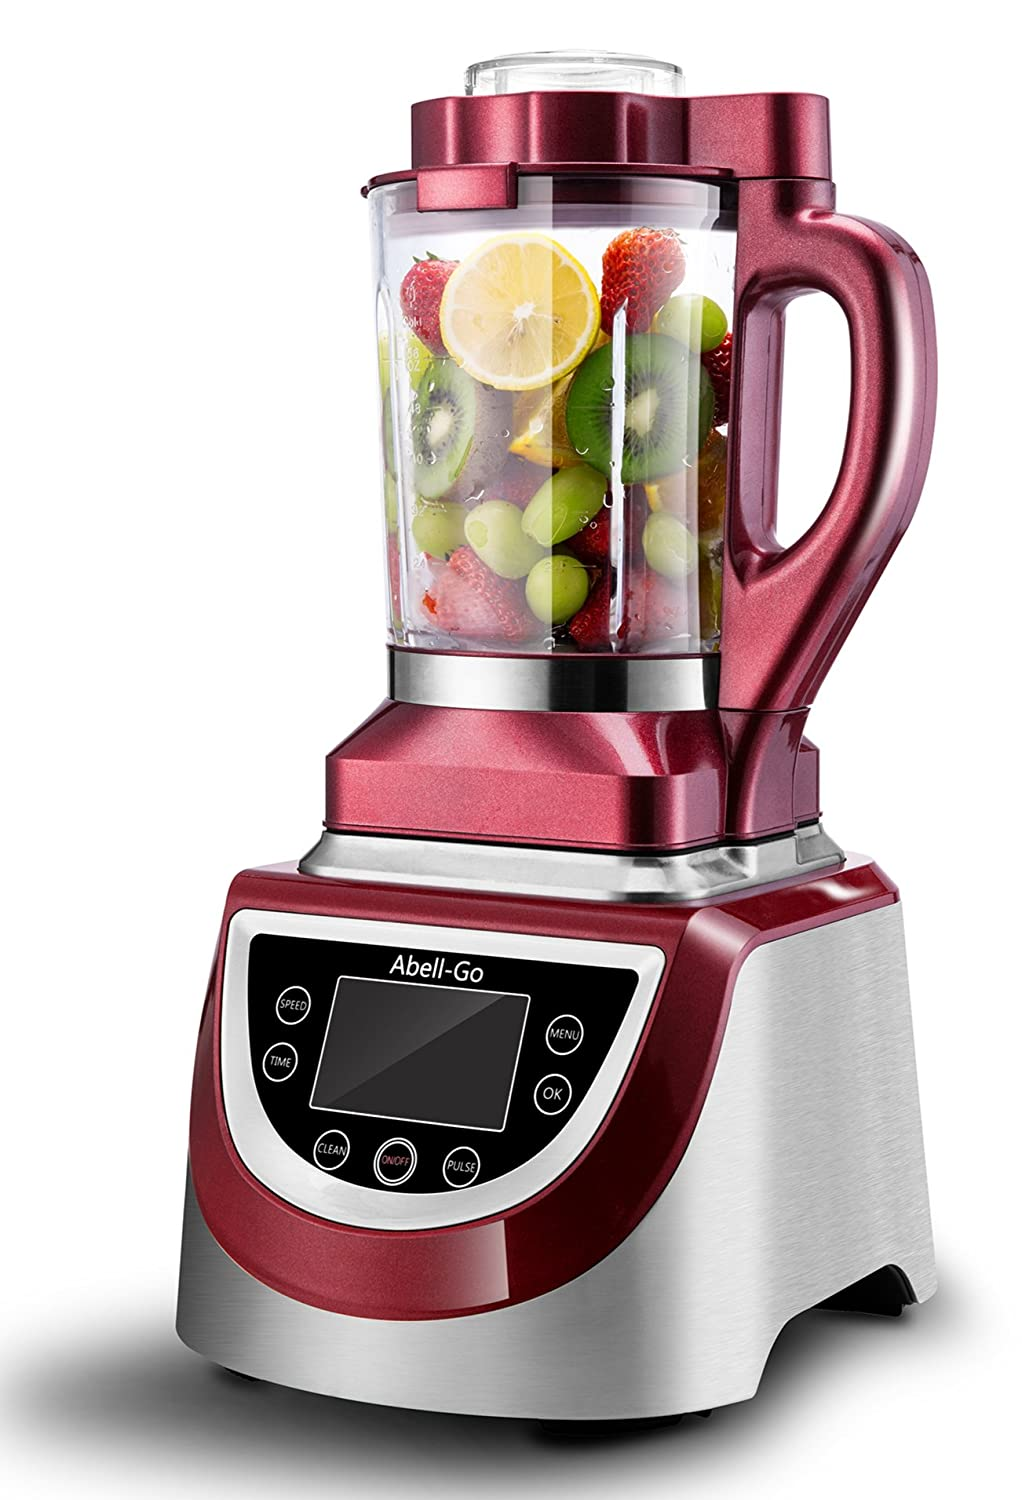 Professional & Commercial Smoothie Blender by Abell-Go-60-Ounce BPA-Free Cup - 8 Speeds - Heavy Duty Food Processor for Ice, Soup, Mincemeat, Nut Butter Etc